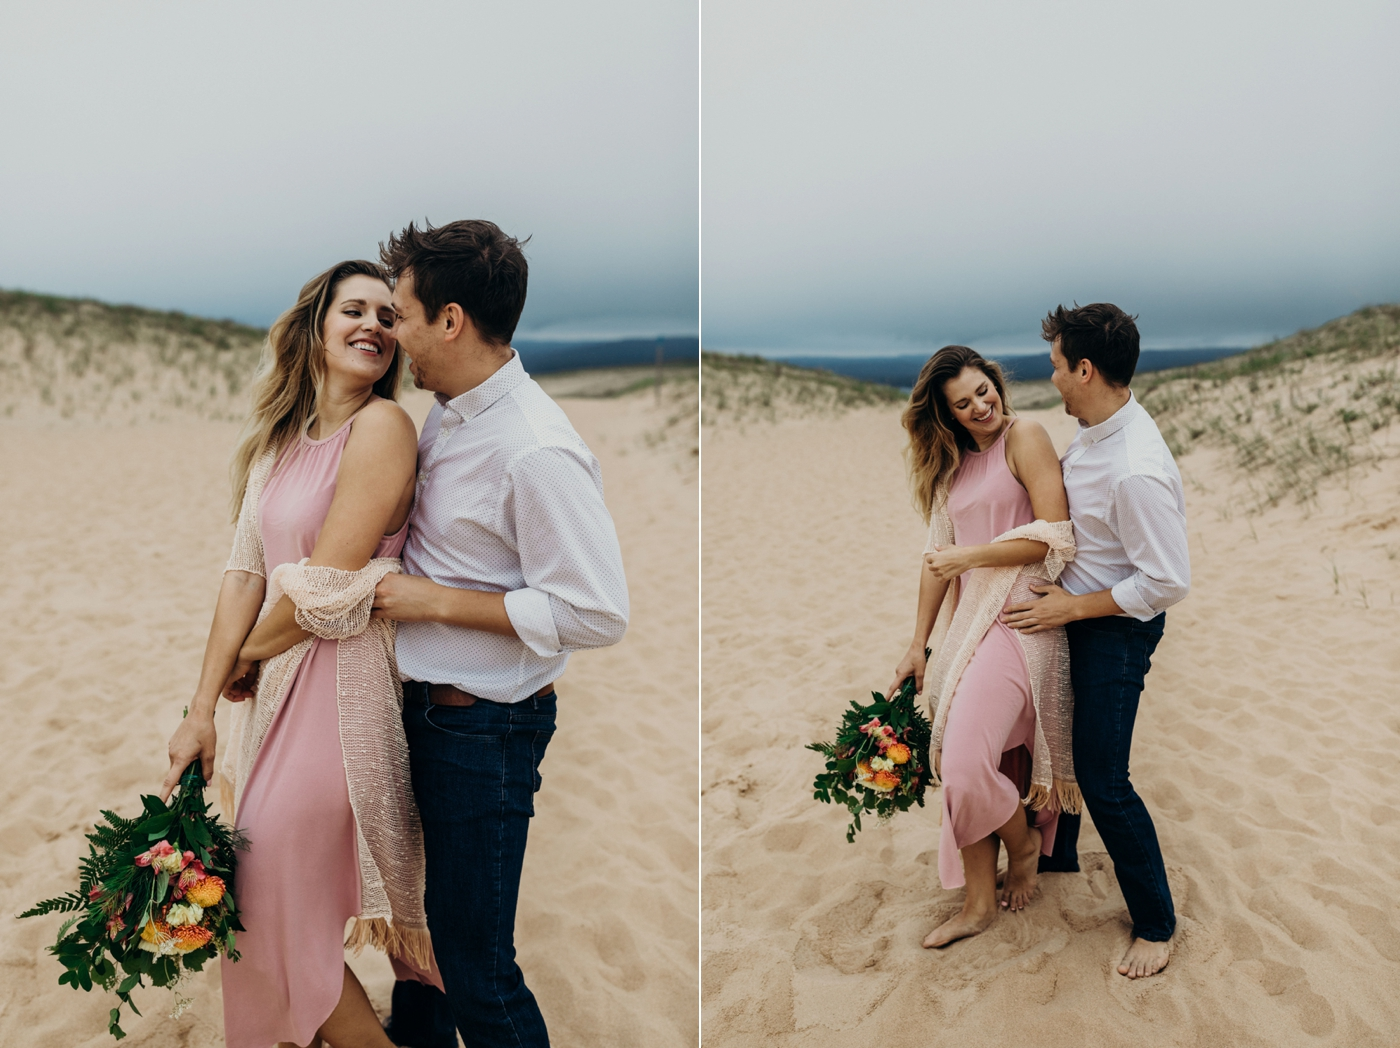 Sleeping_Bear_Dunes_Couples_Adventure_Session_Adventure_Wedding_Photographer_Hiking_with_Heels_Brett+Emily-5.jpg